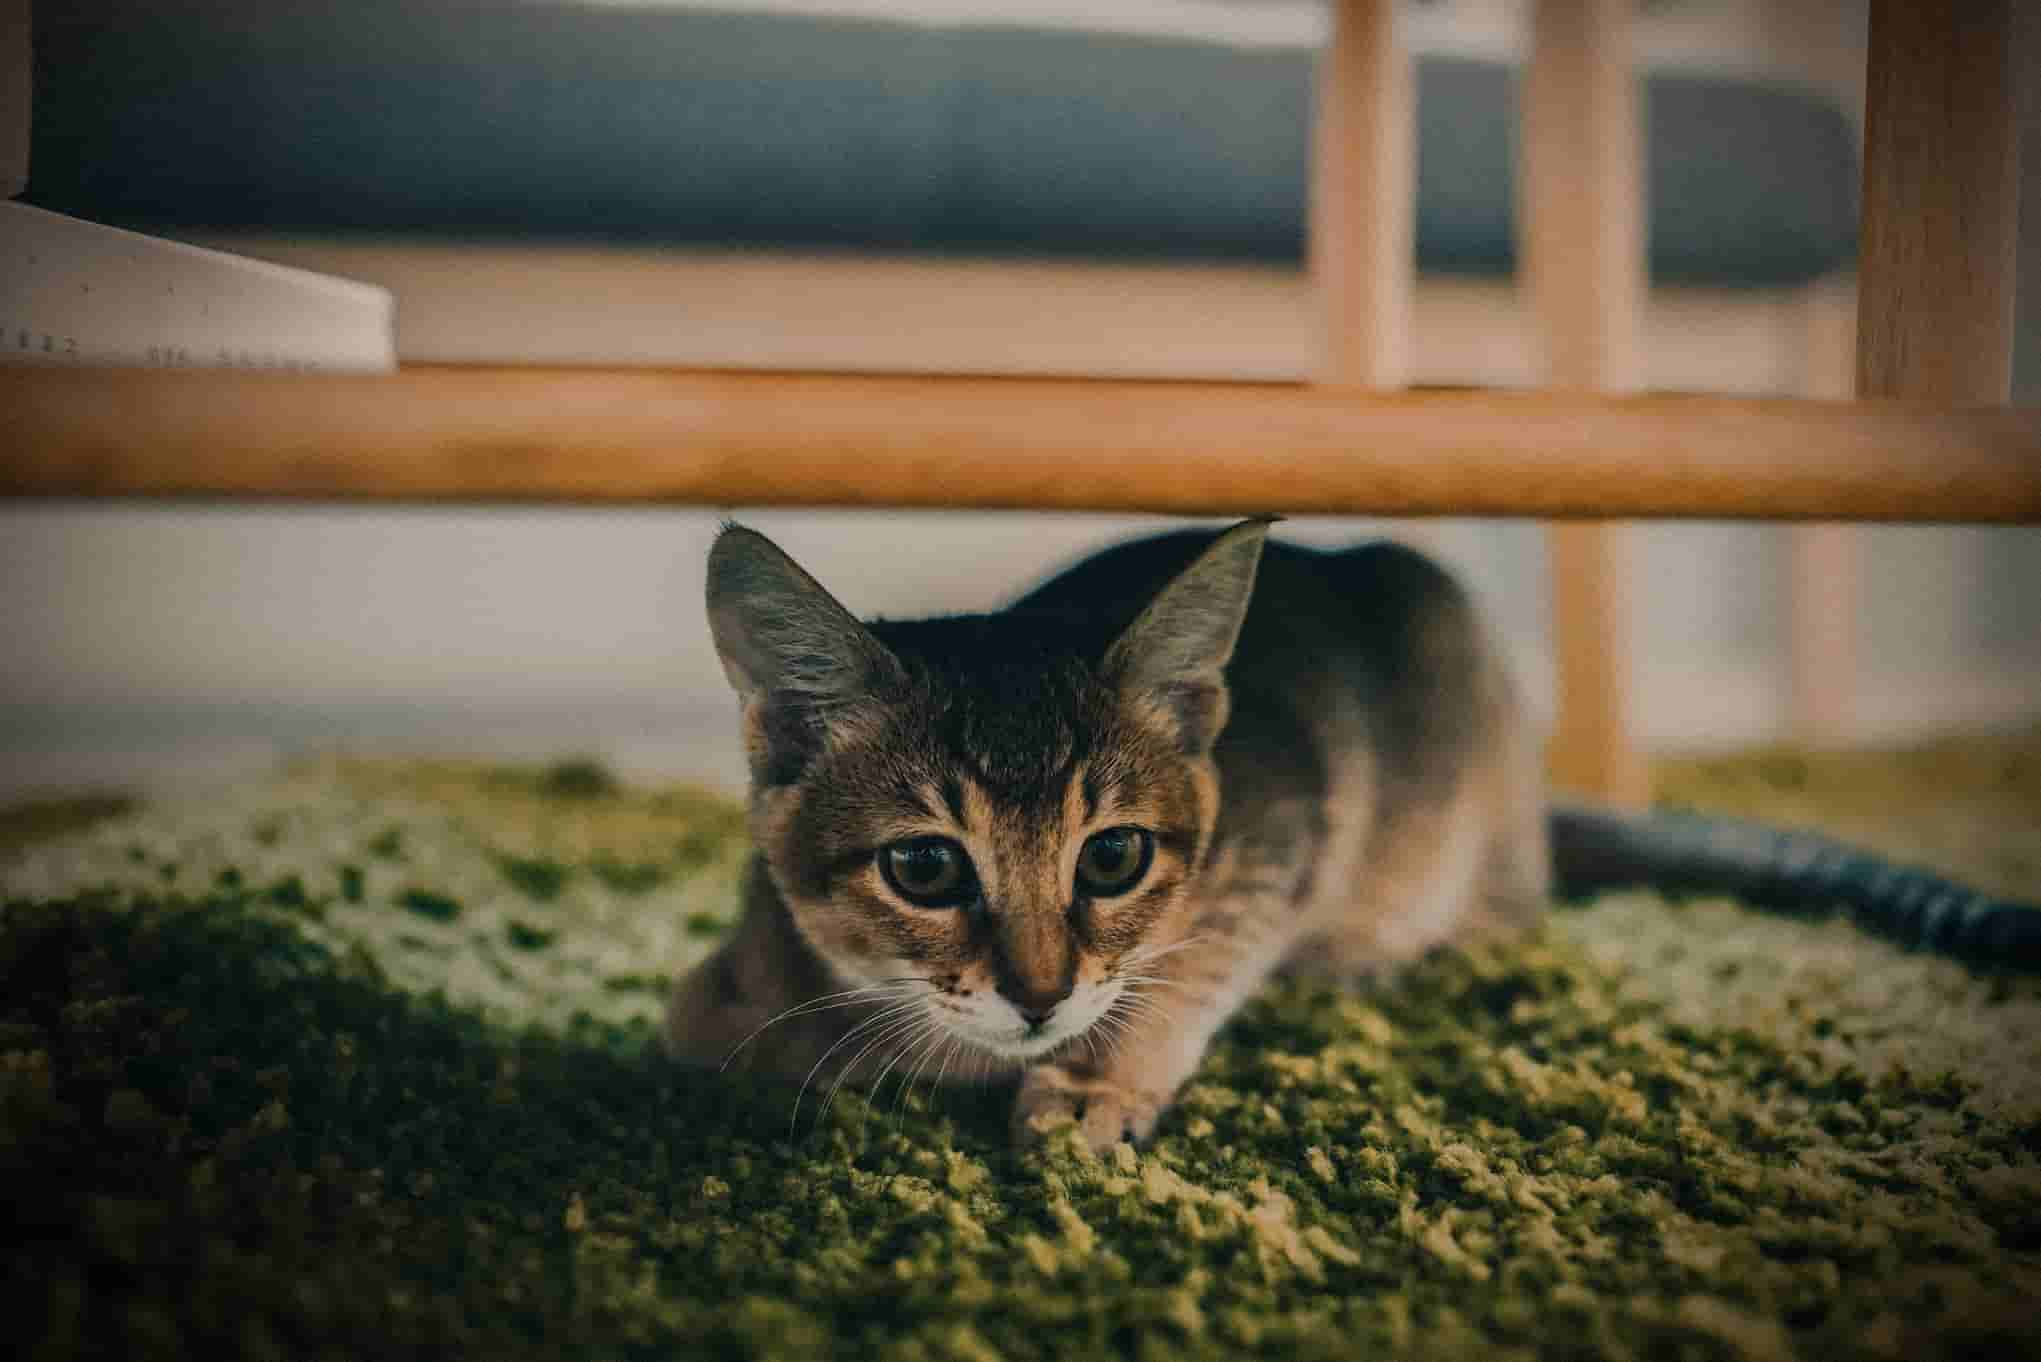 Crouching Tiger, Hidden Kitty: How to Deal with a Cat That's Hiding